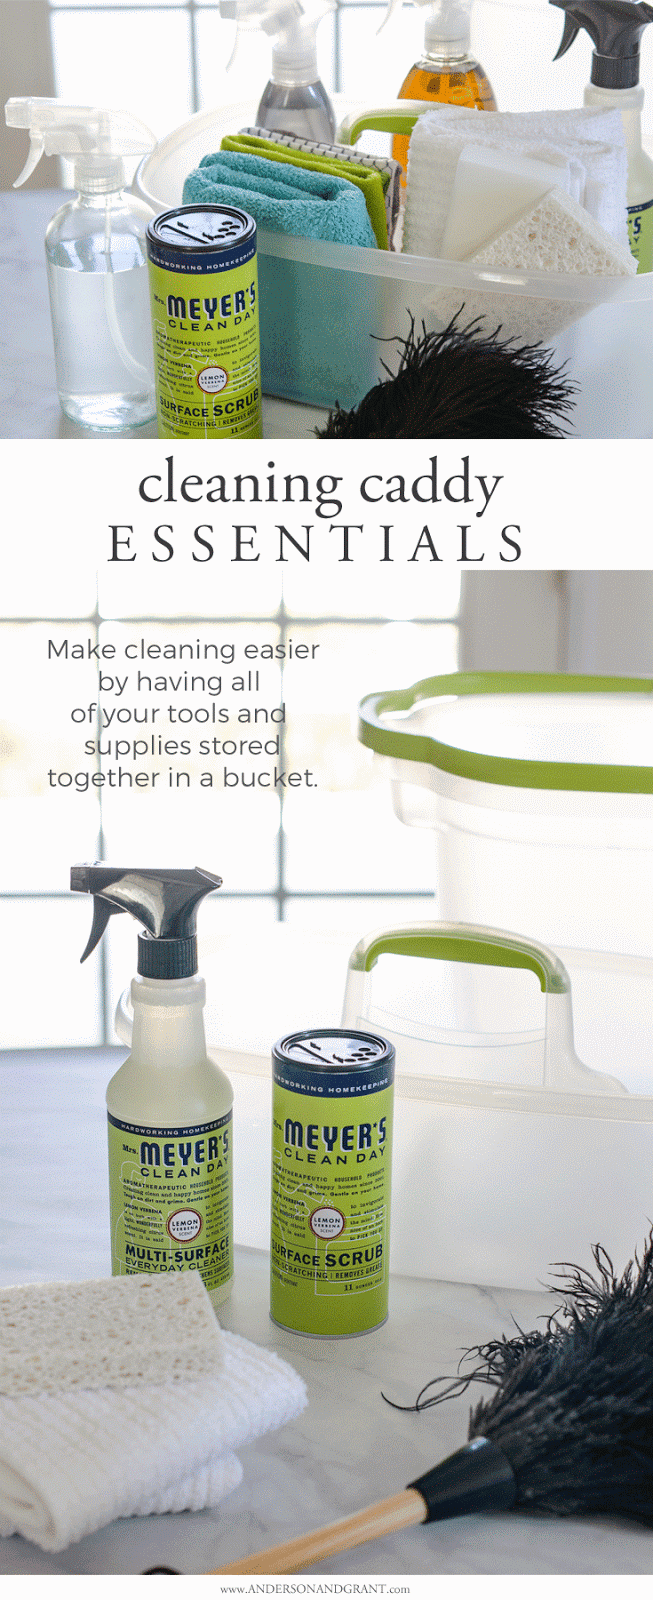 Keeping a caddy well stocked with your cleaners, rags, and tools will help make weekly home maintenance quick, easy, and painless.  Find out what essentials you should include.  |  www.andersonandgrant.com